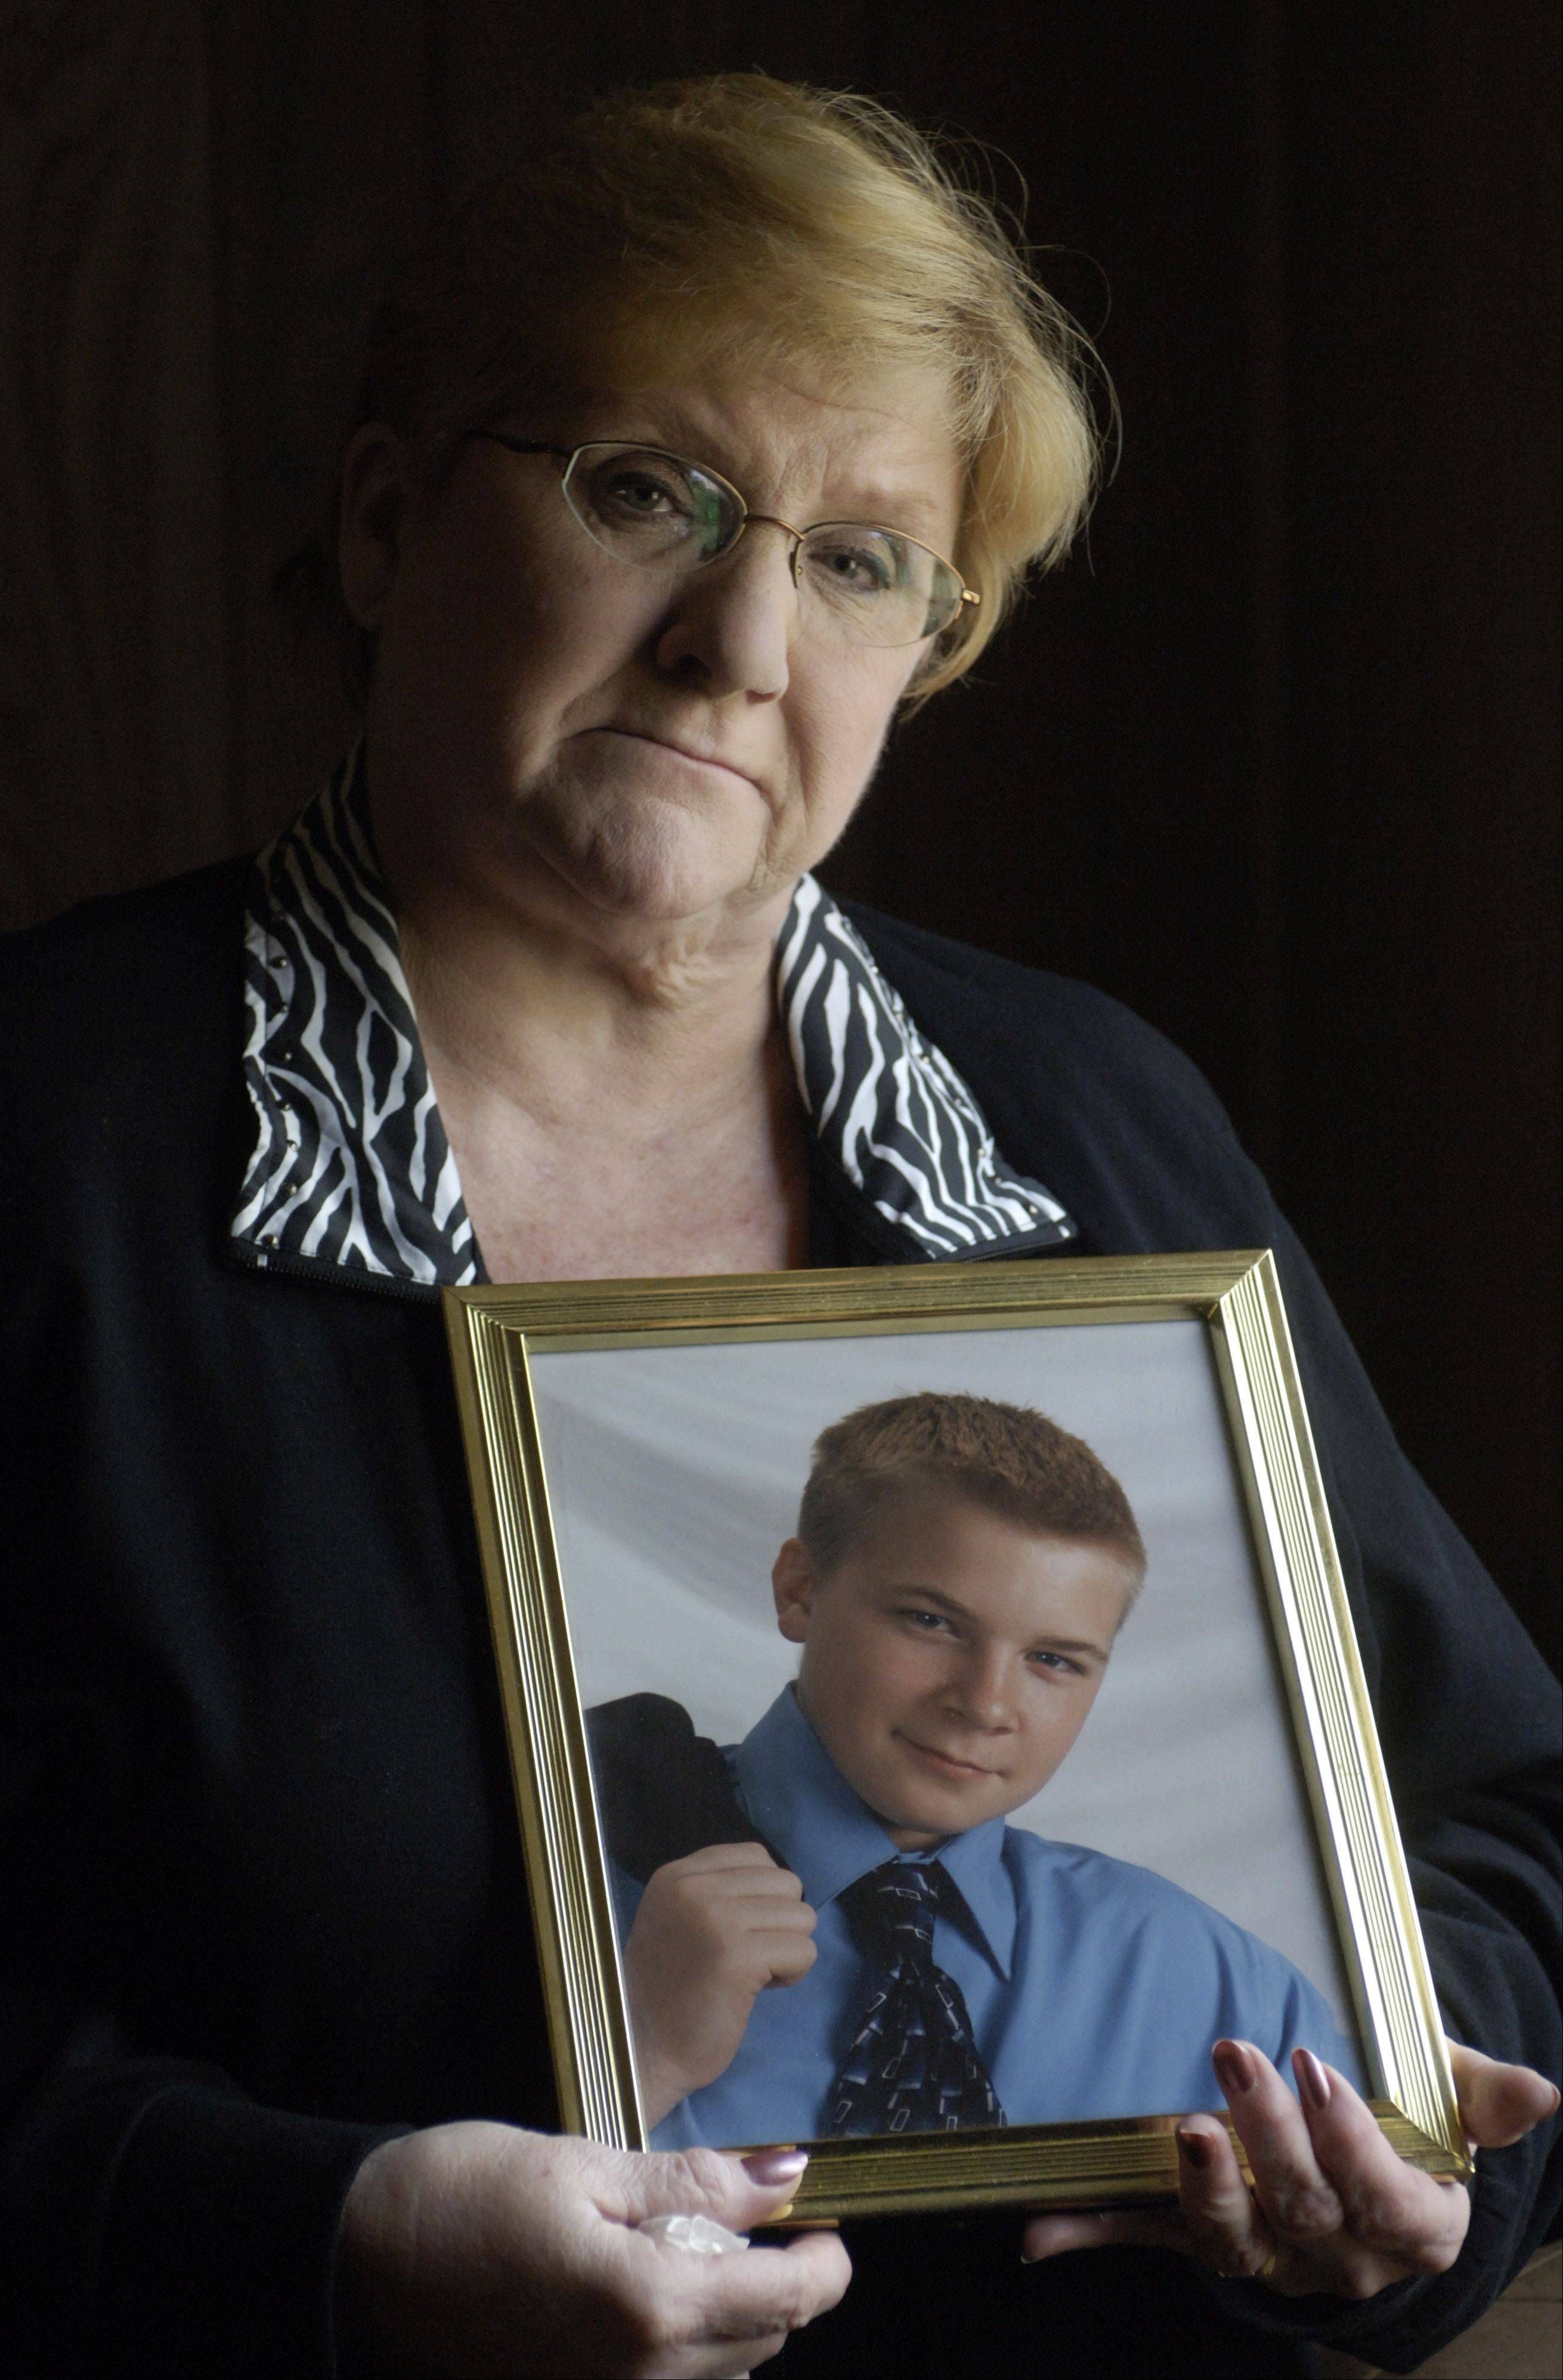 Nanci Koschman of Mt. Prospect holds a photo of her son, David, who died in 2004 after a fight outside a Chicago bar.